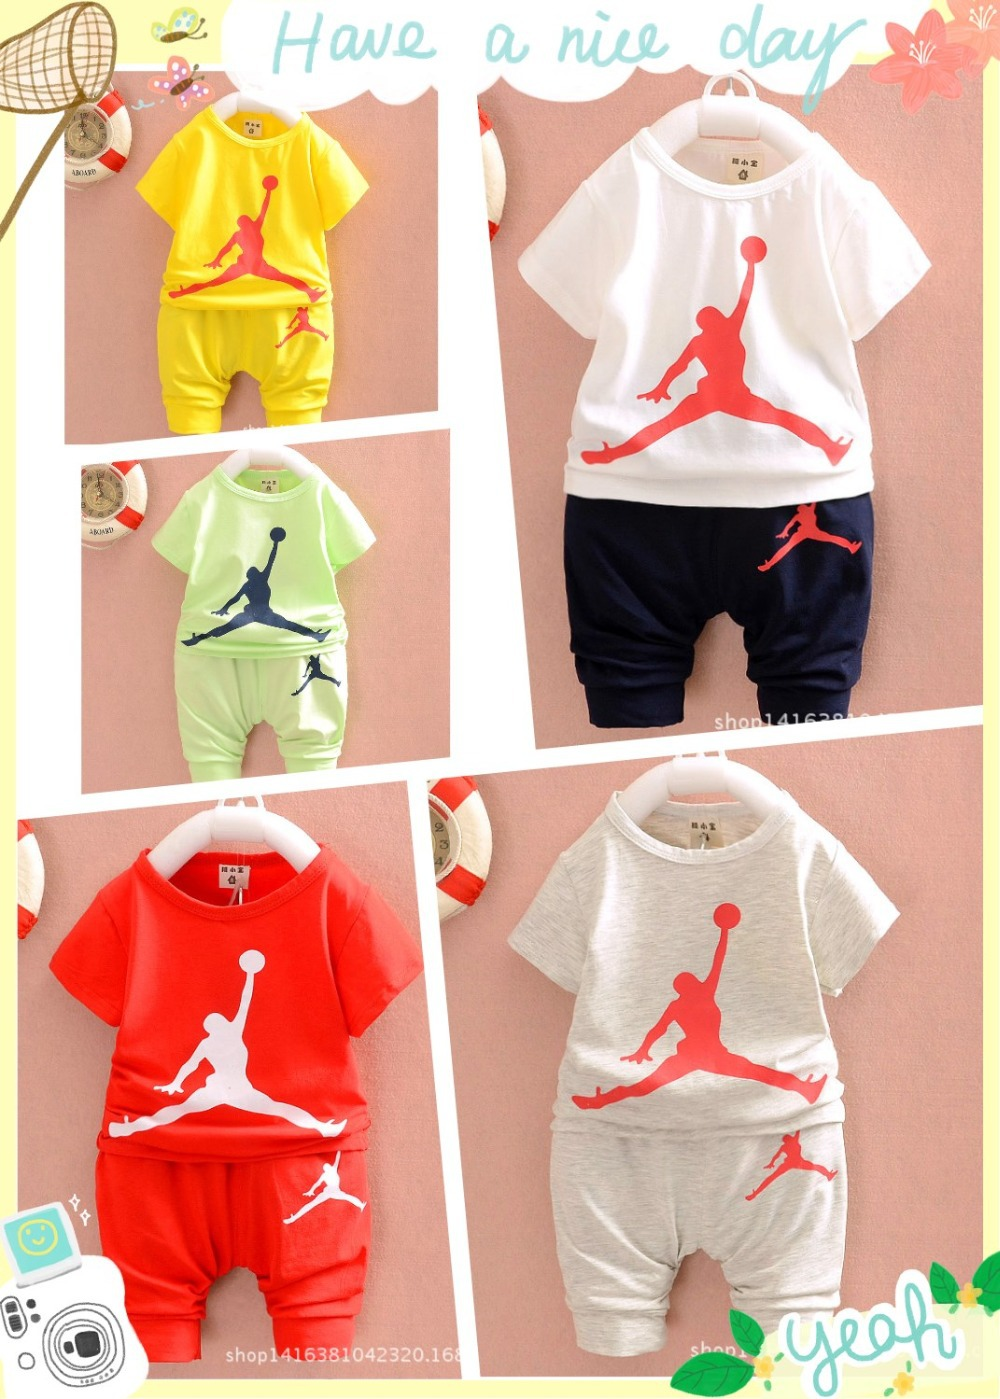 bfe953c56a612c Hot sales sale summer children boys girls brand fashion jordan 23 T shirt  +Haroun pants 2sets children sets tops T shirt+ pants-in Clothing Sets from  Mother ...